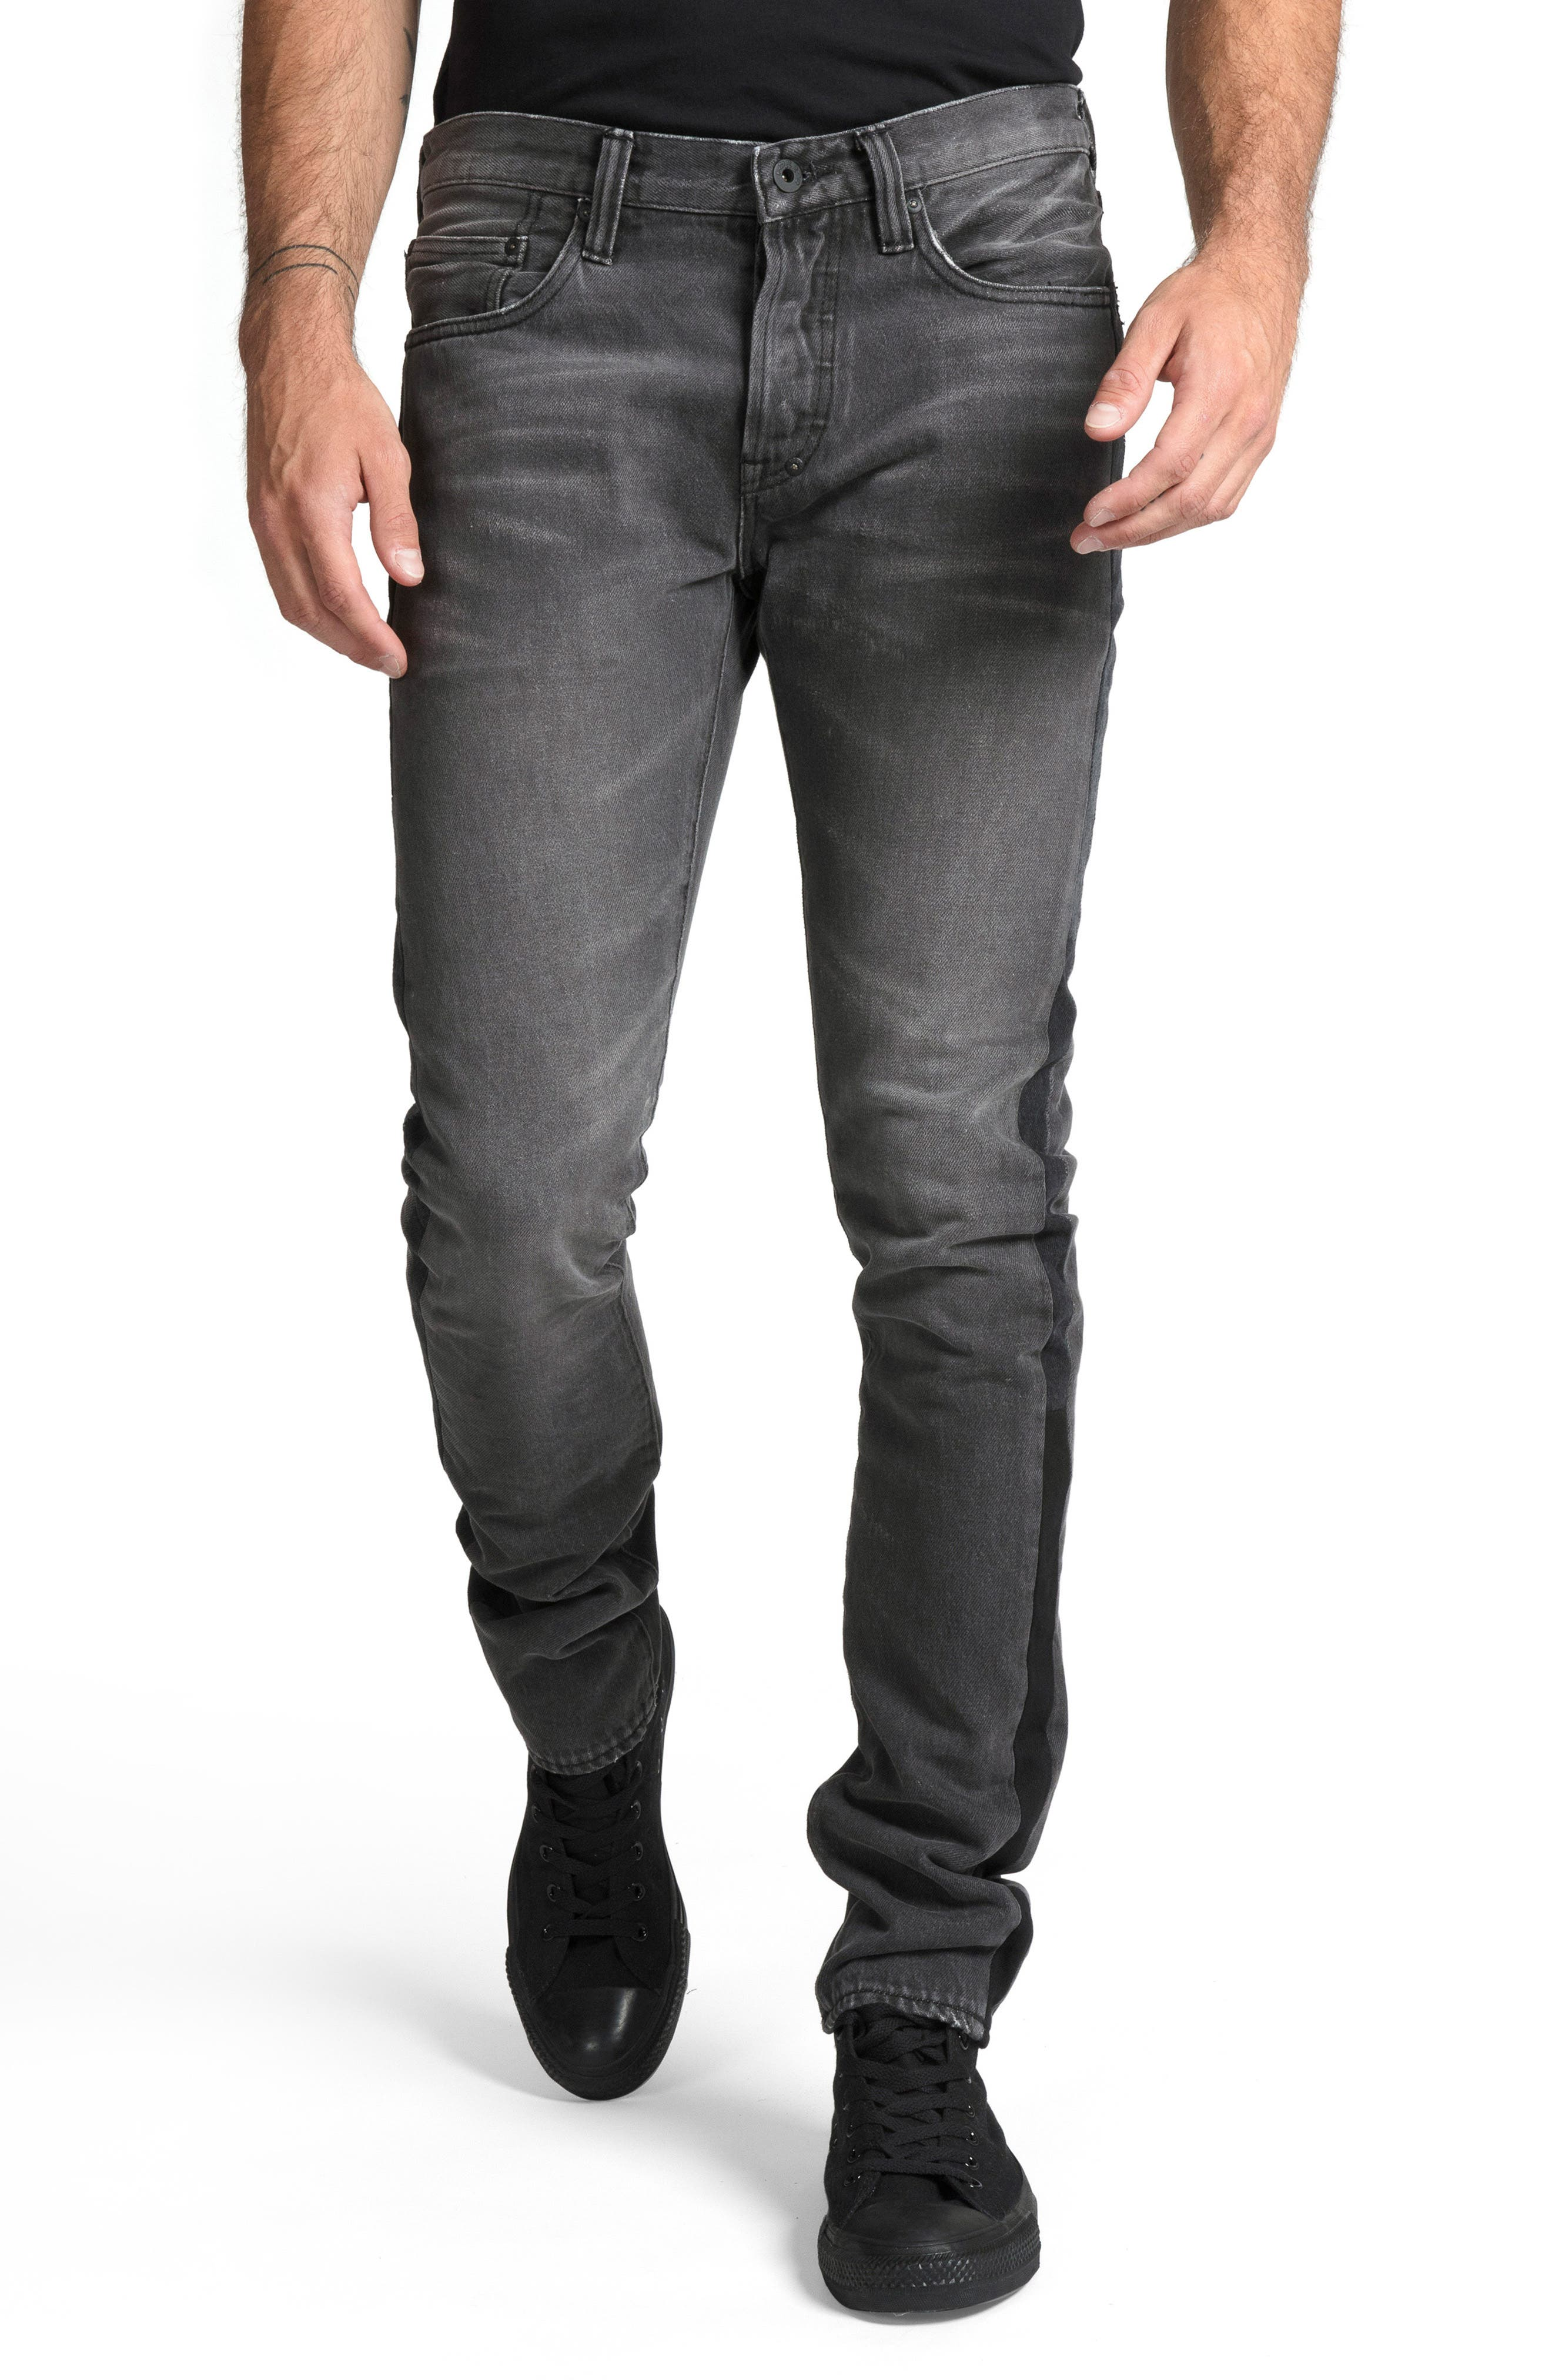 Le Sabre Slim Fit Jeans,                             Main thumbnail 1, color,                             ABHORRENT